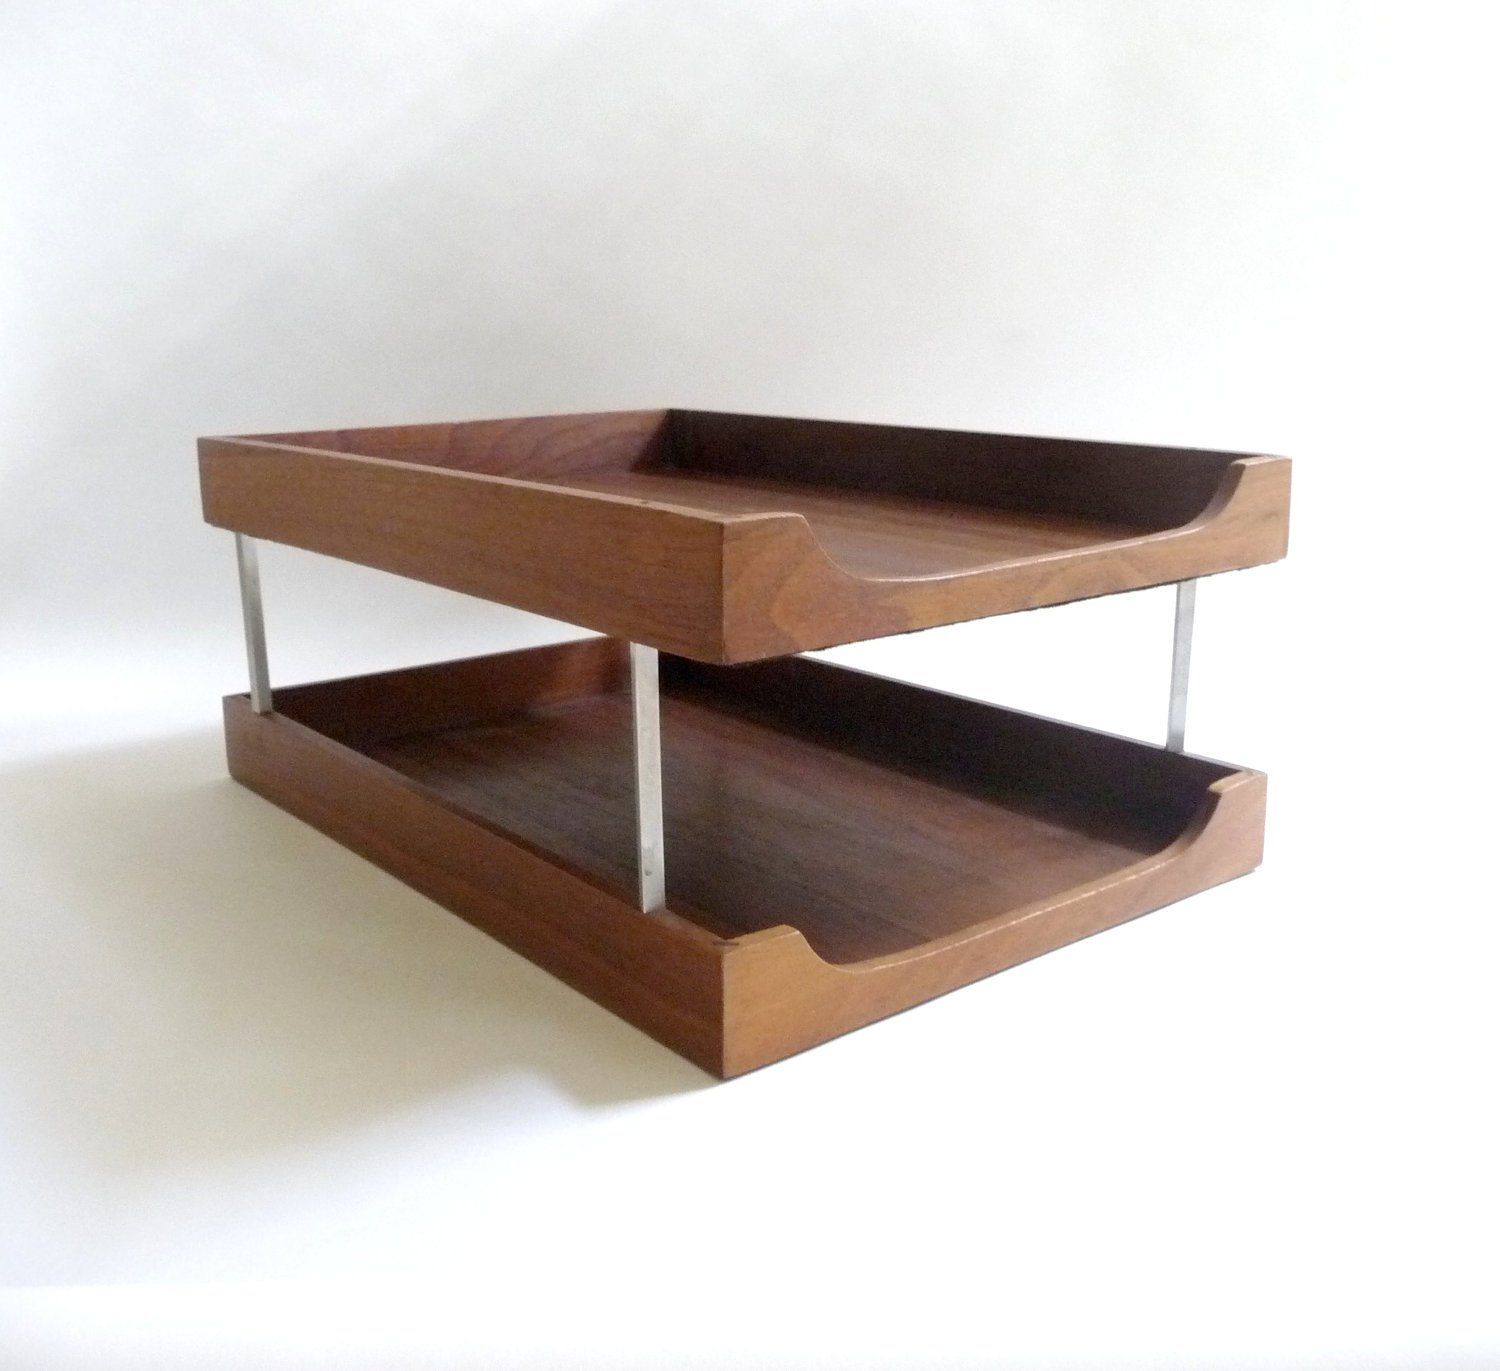 Mid Century Modern Wood And Metal Letter Tray Desk Organizer Mid Century Modern Wood Wood And Metal Desk Wood And Metal